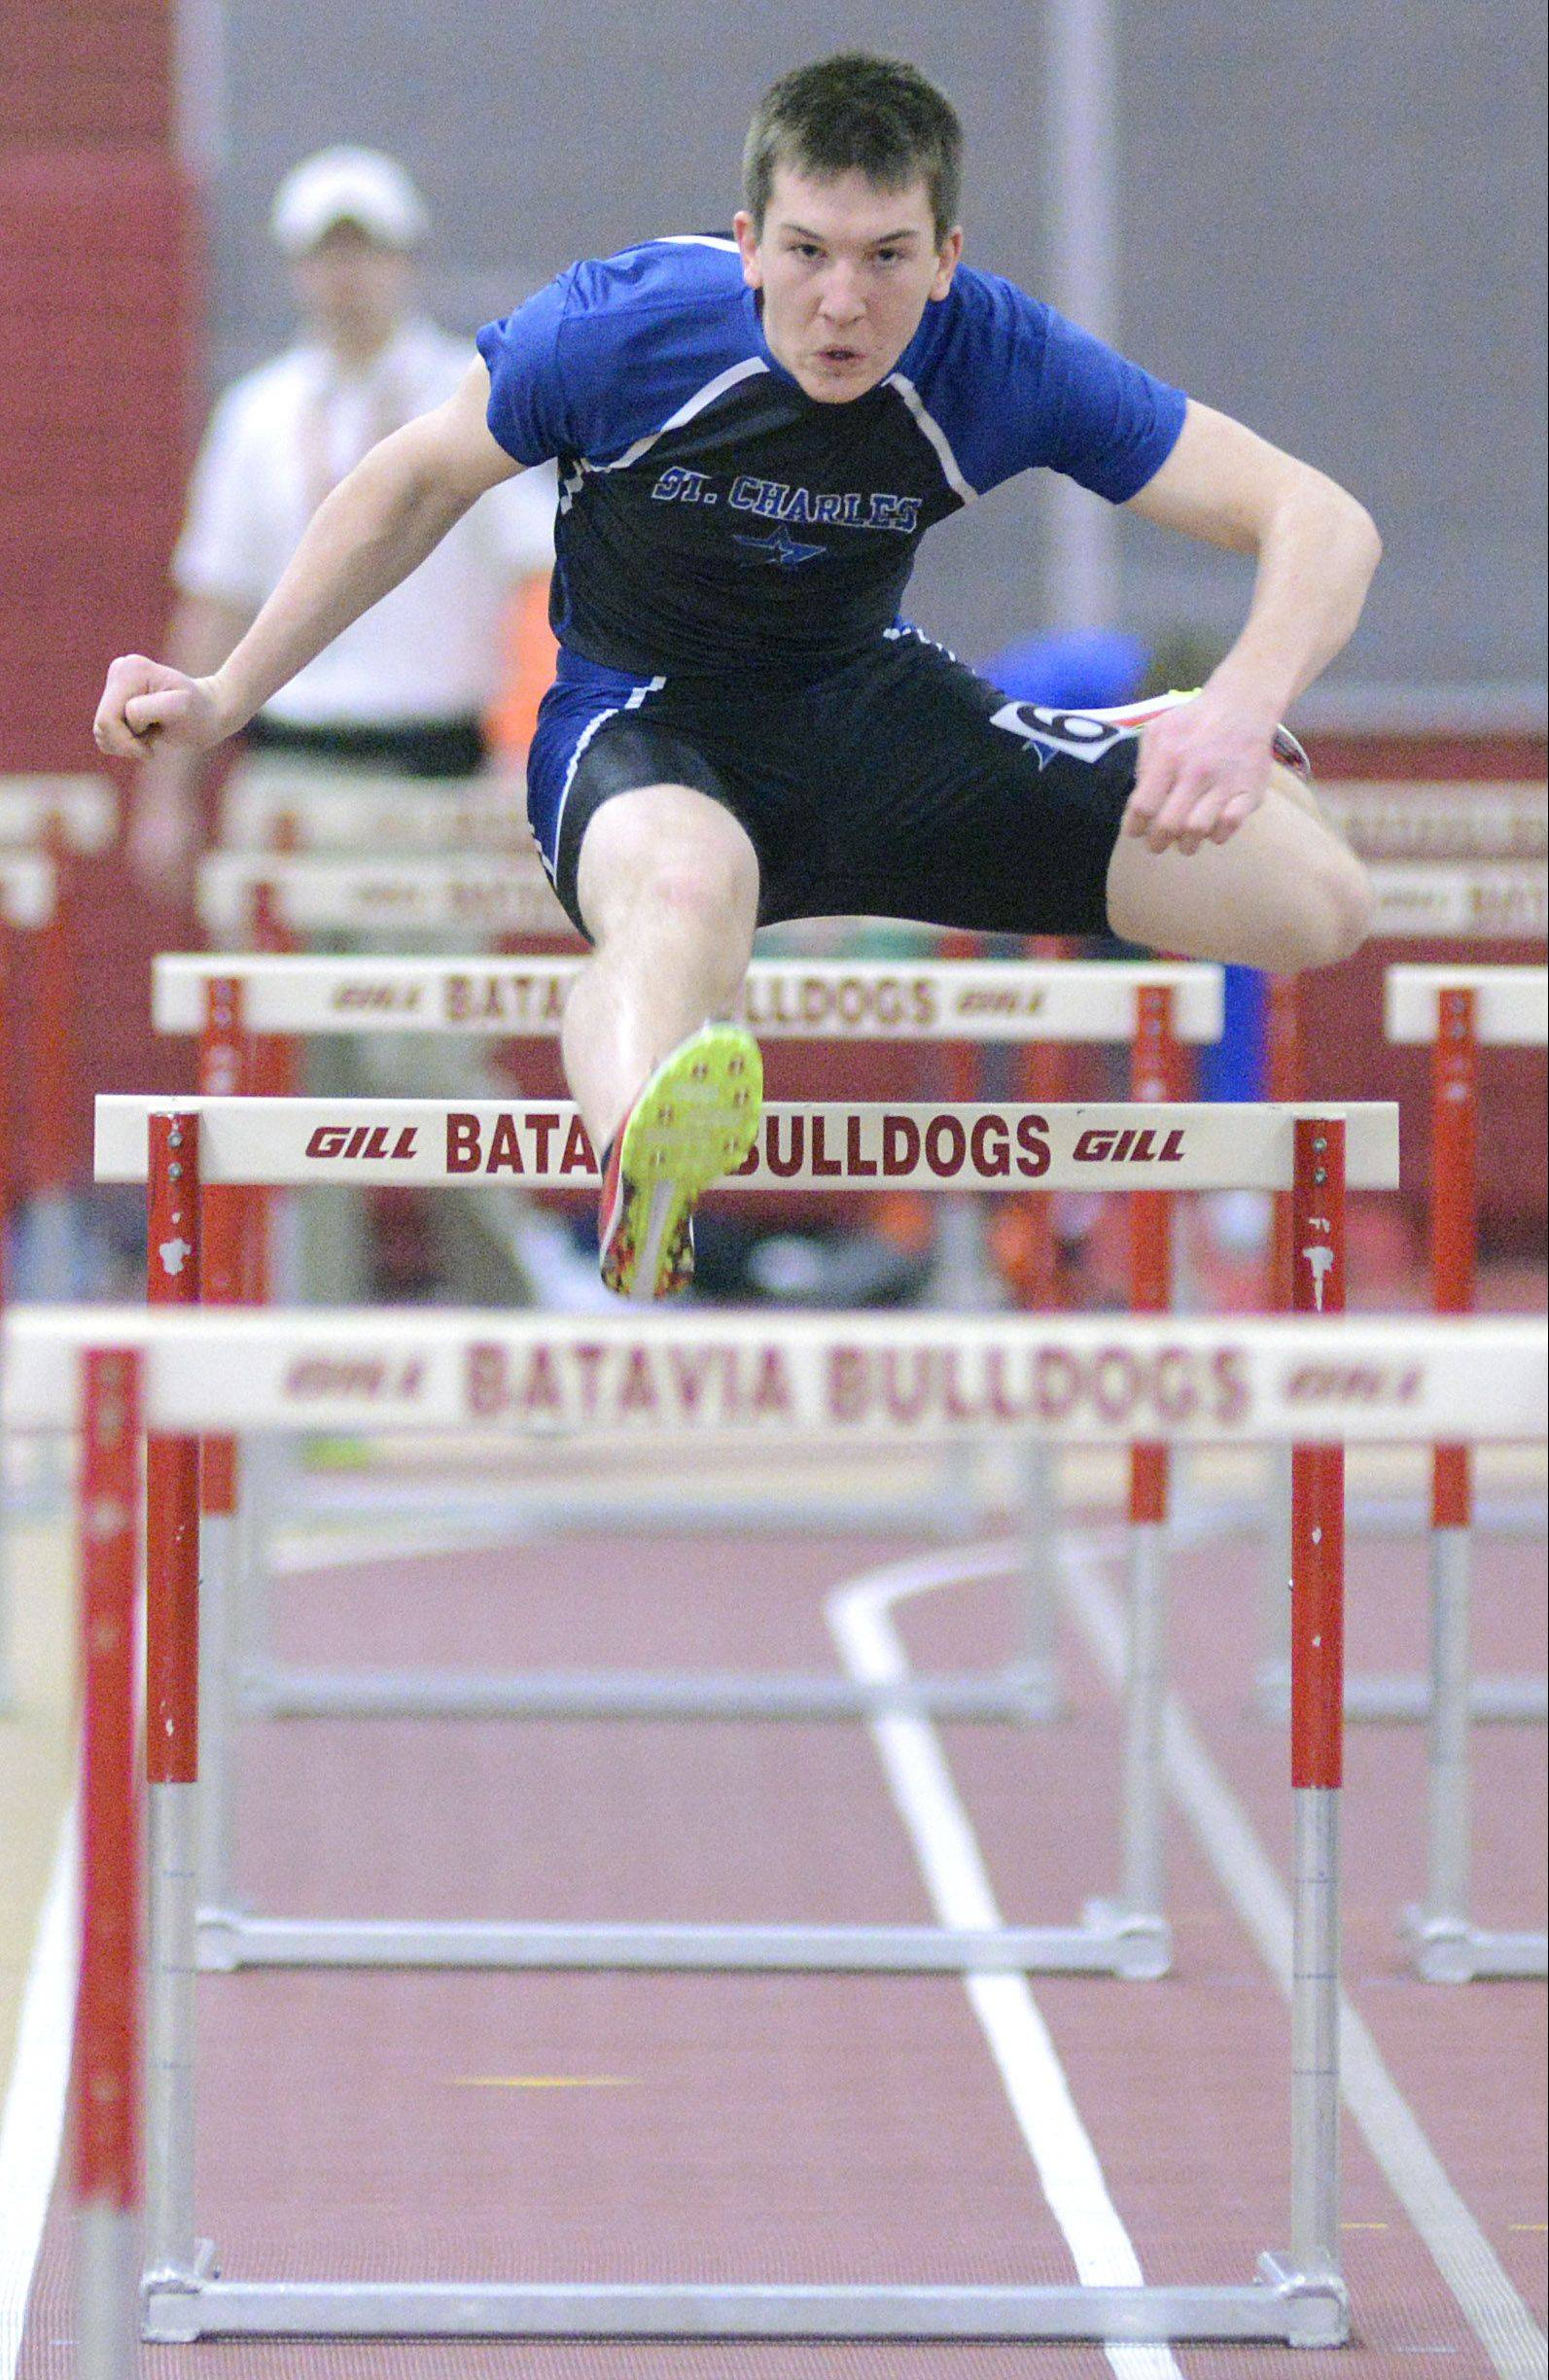 Above: St. Charles North's Mason Heinz runs the 55 meter hurdles at the Upstate Eight Conference meet in Batavia on Saturday. Below, left to right: St. Charles East's Ryan Memije, Geneva's Nate Wendt and Batavia's Mitch Zabka.